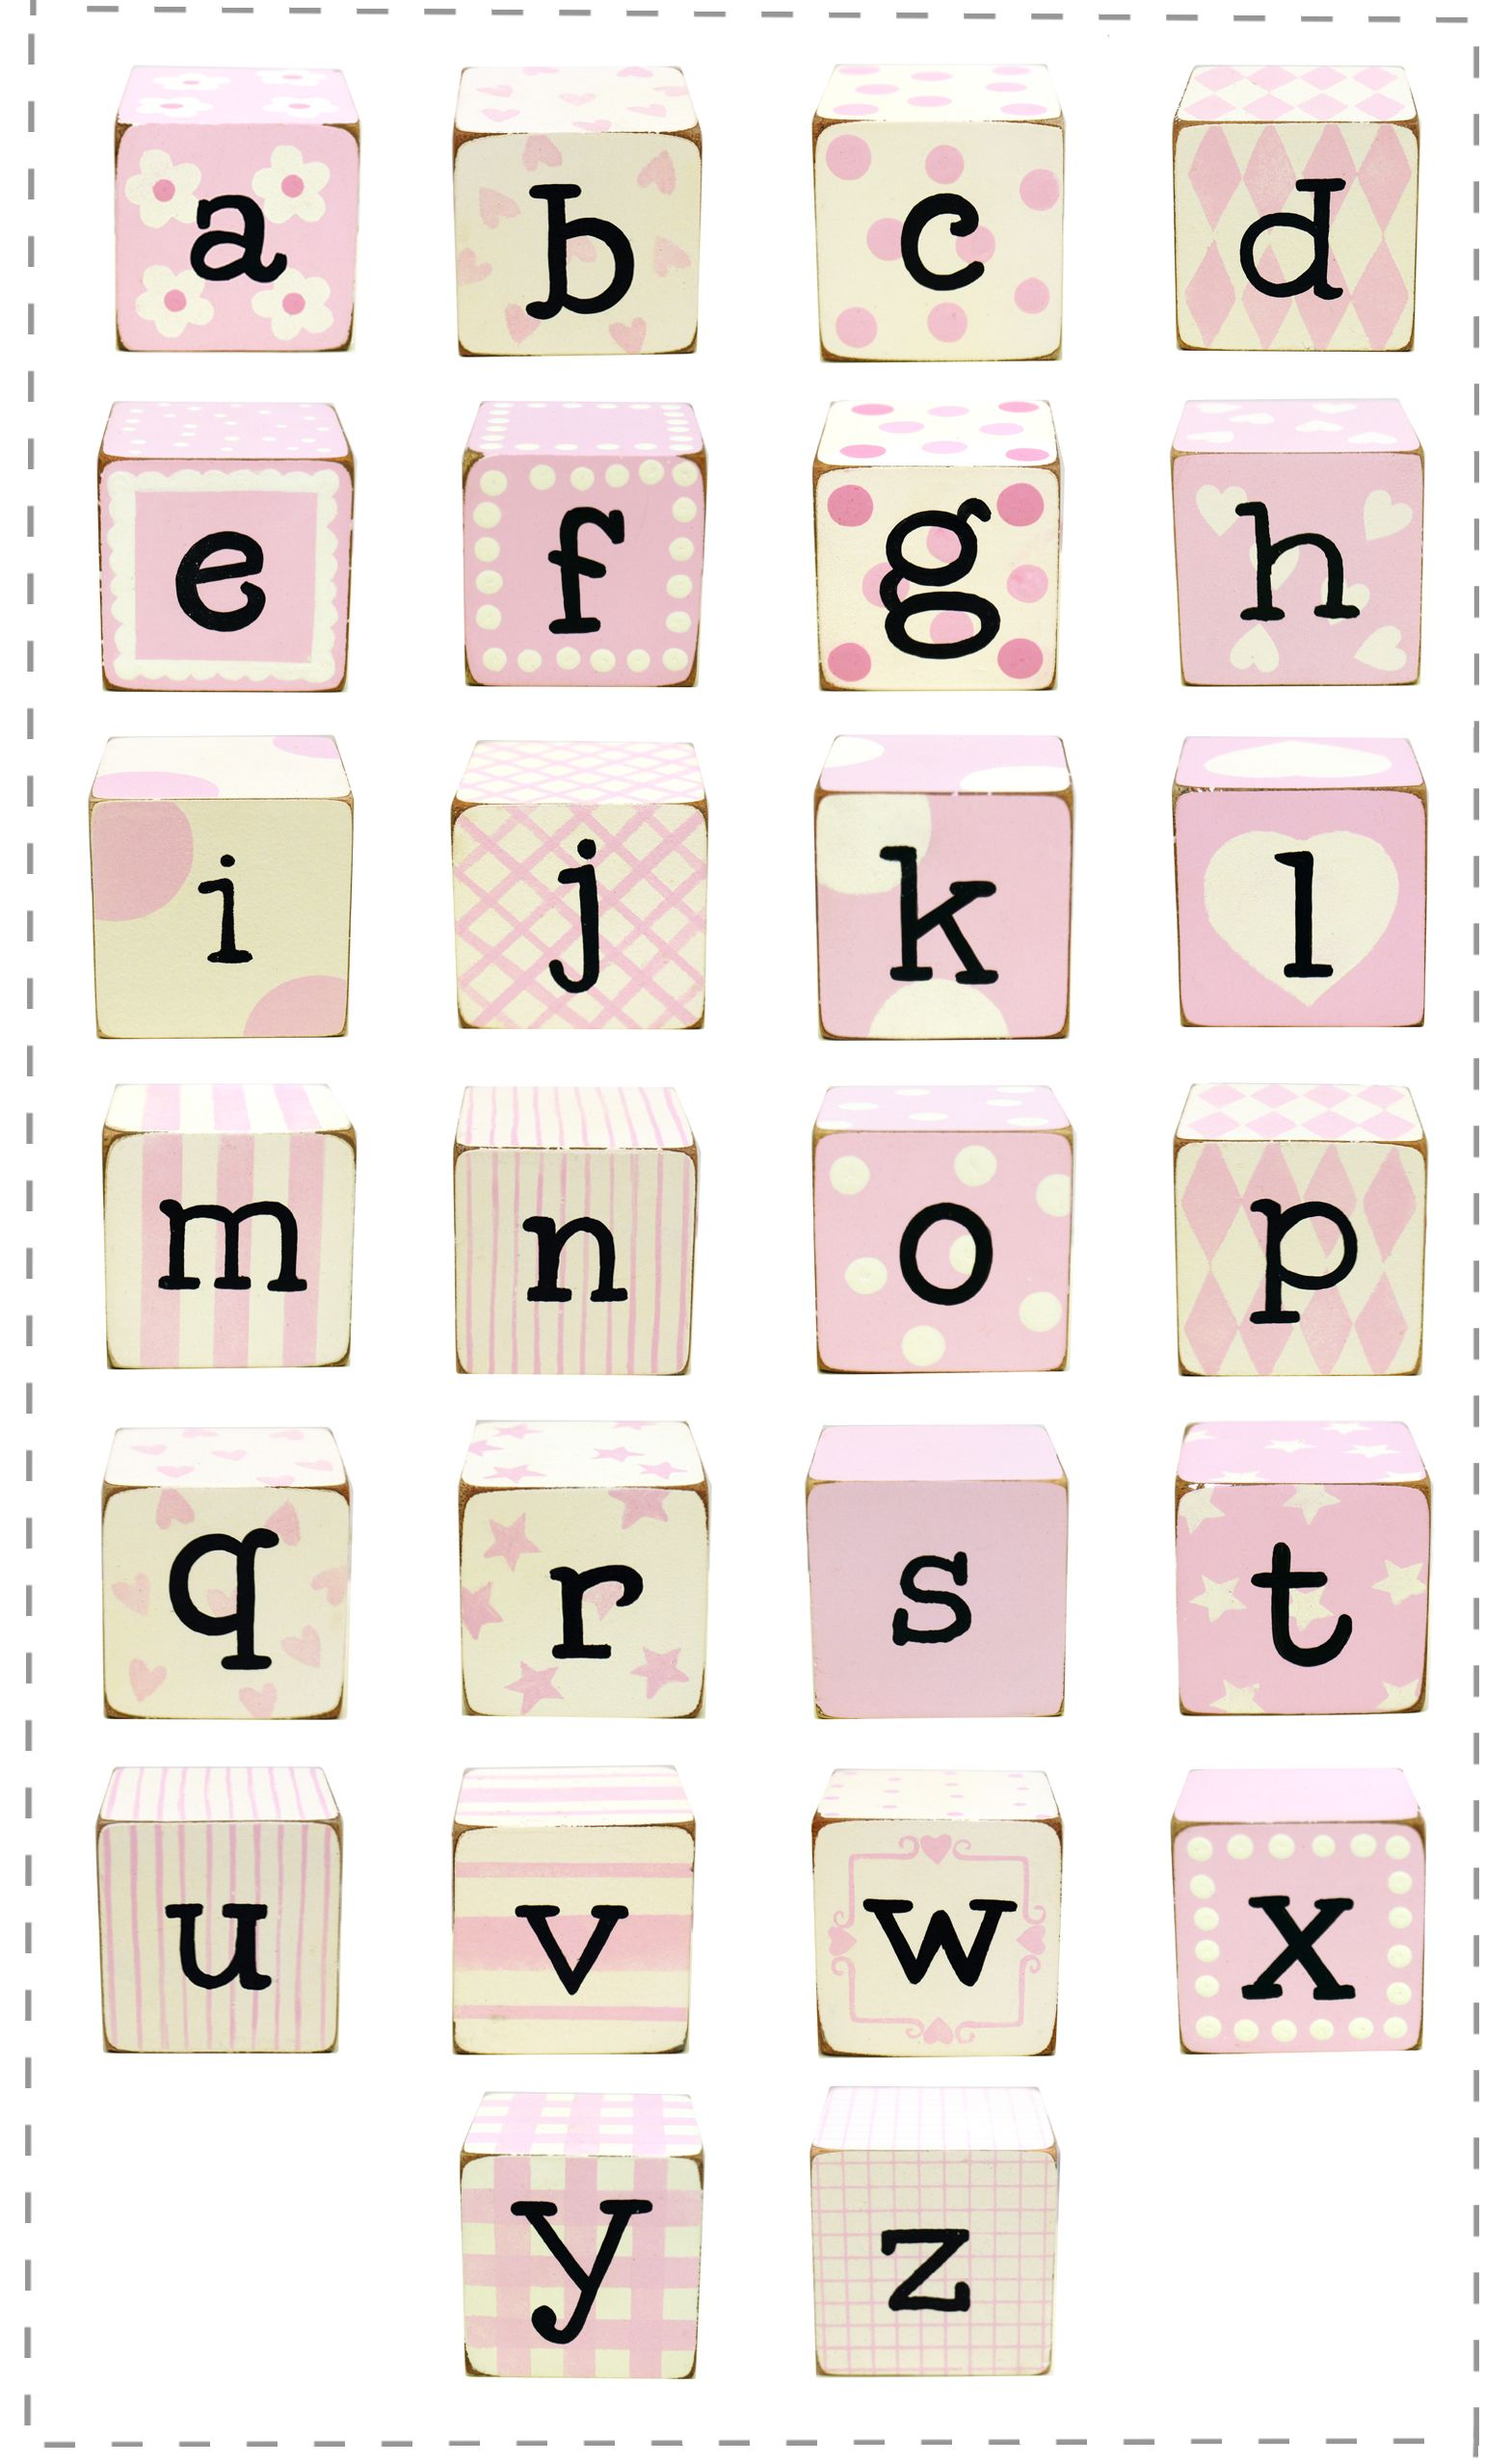 17 best images about baby letters on pinterest initials trays and accent pillows